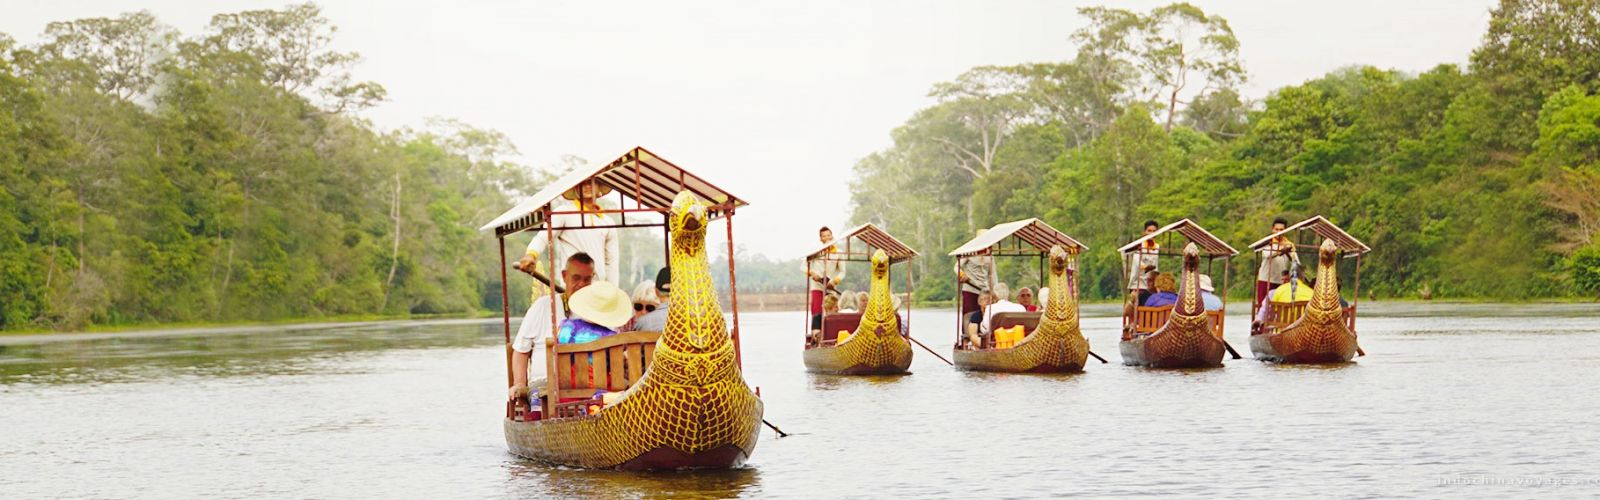 Indochina Indochine Package Tours